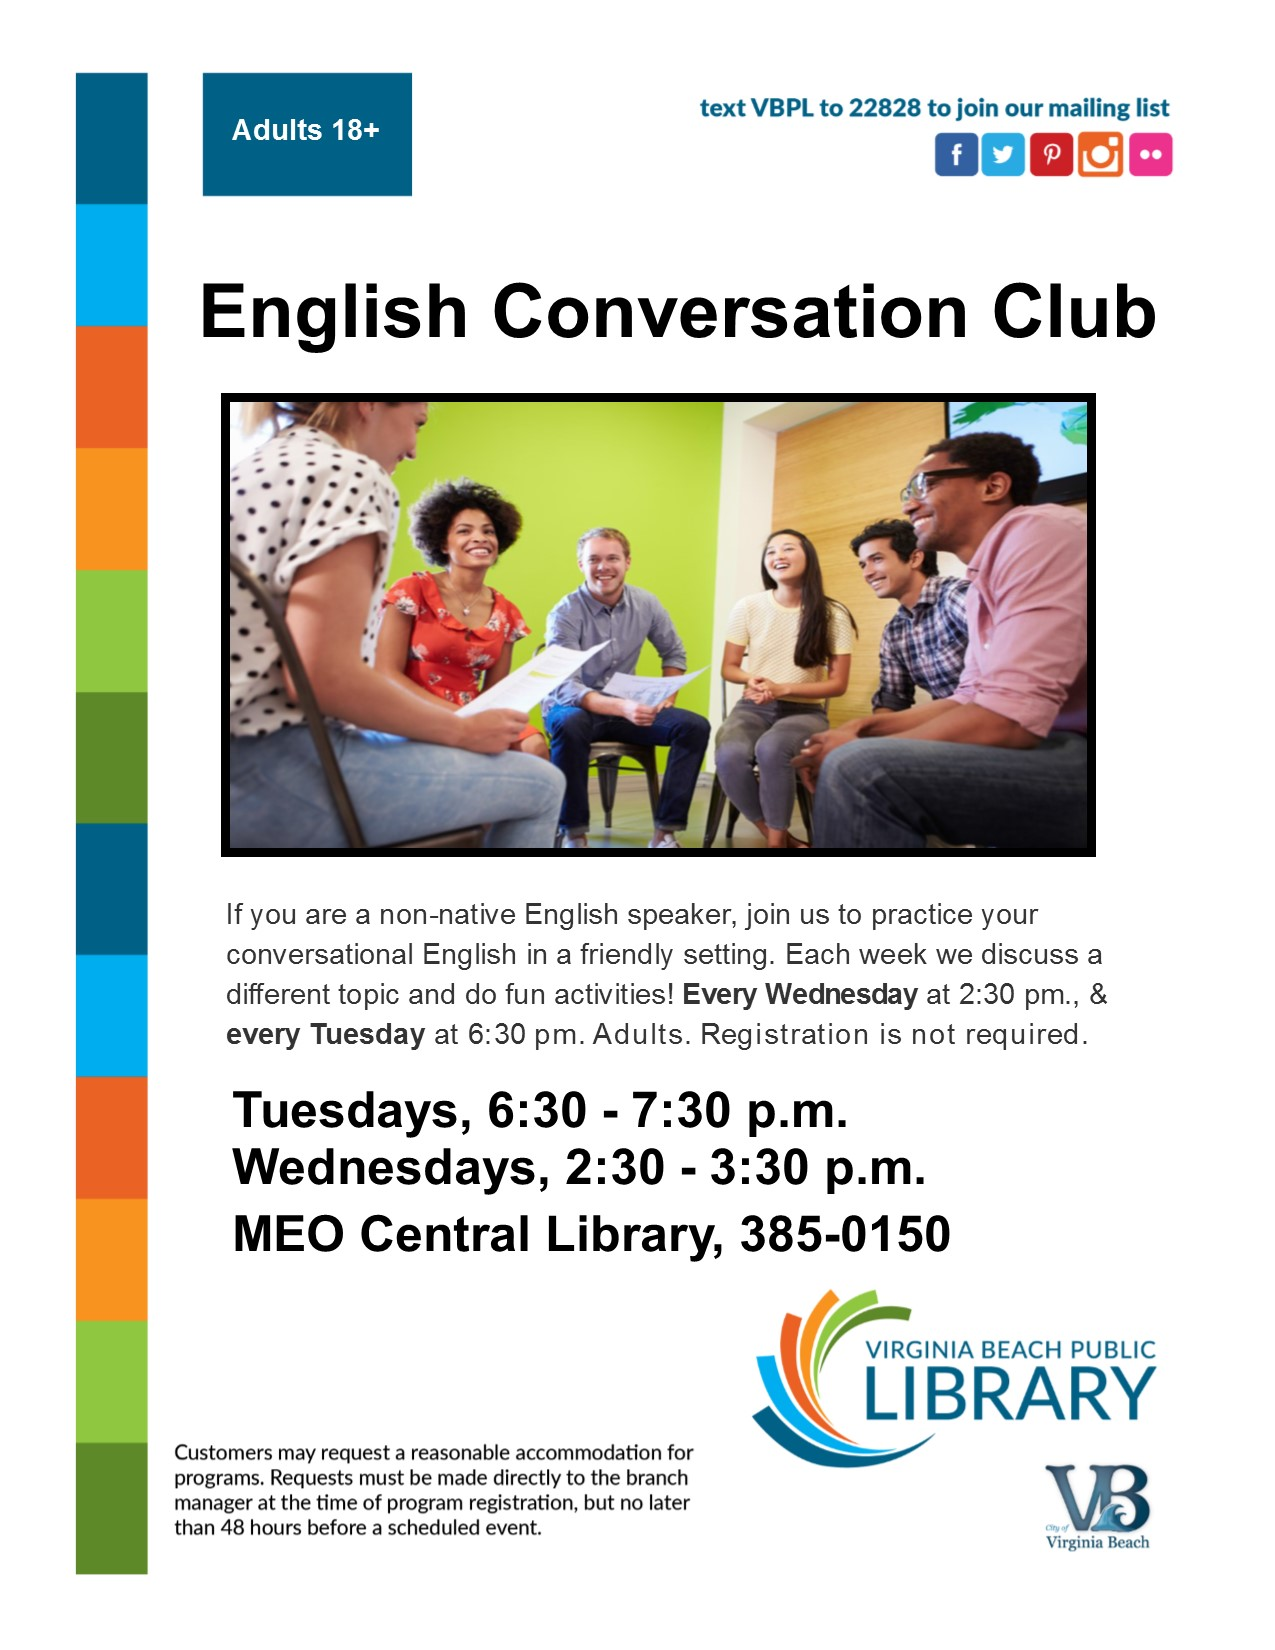 English Conversation Club flyer.